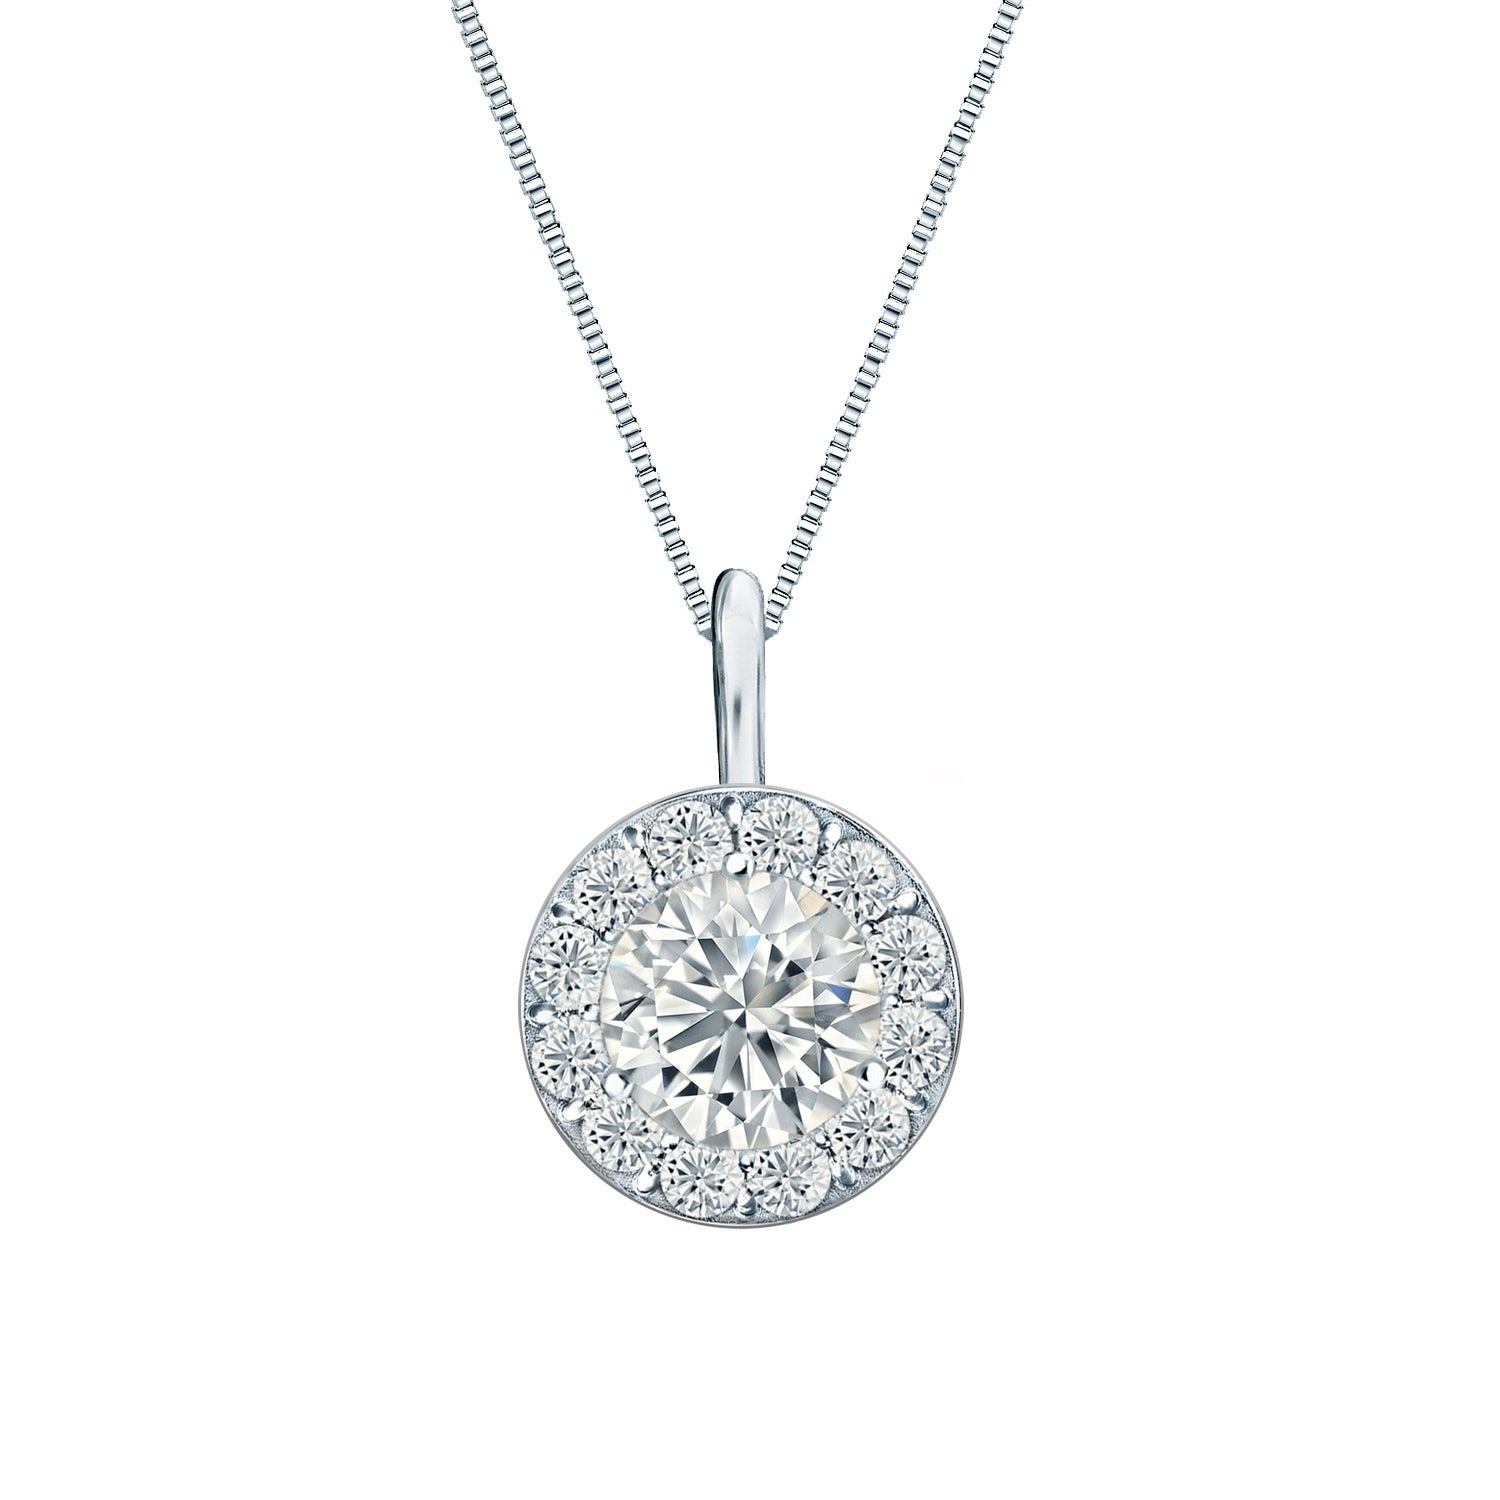 Ethical Sparkle 1/4Ctw Round Lab Created Halo Diamond Necklace 14K Gold Pertaining To 2019 Round Sparkle Halo Pendant Necklaces (View 2 of 25)